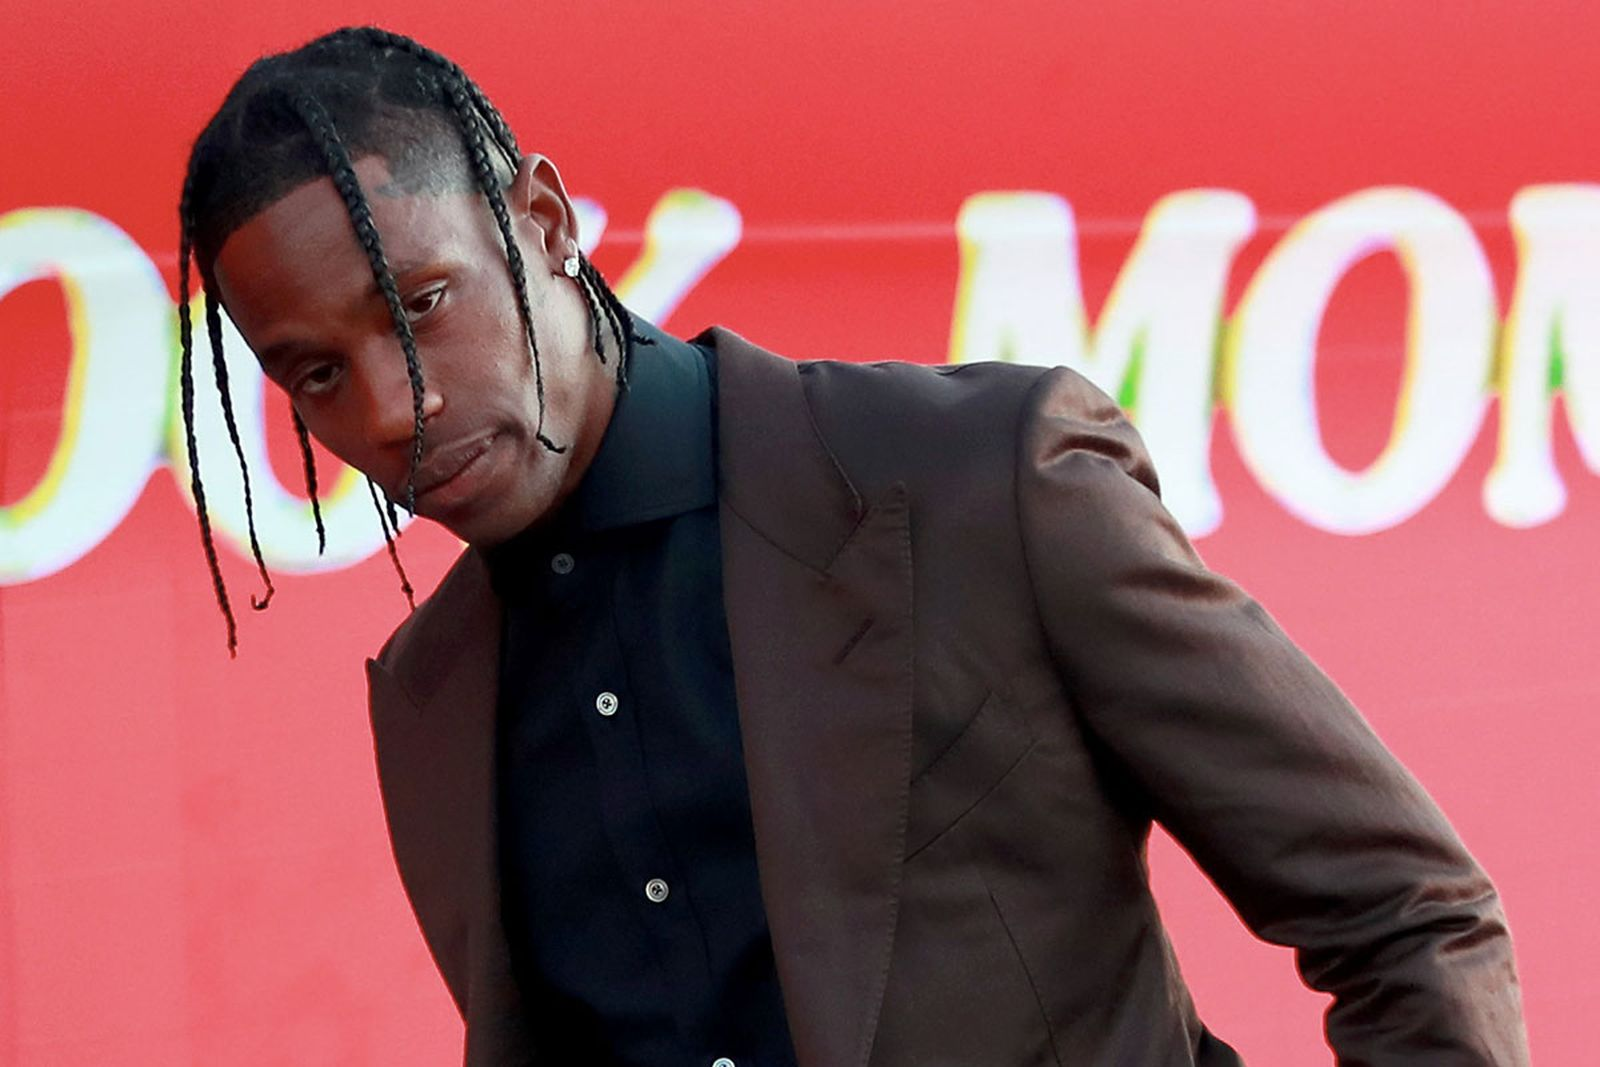 travis scott documentary x things learned Look Mom I Can Fly netflix